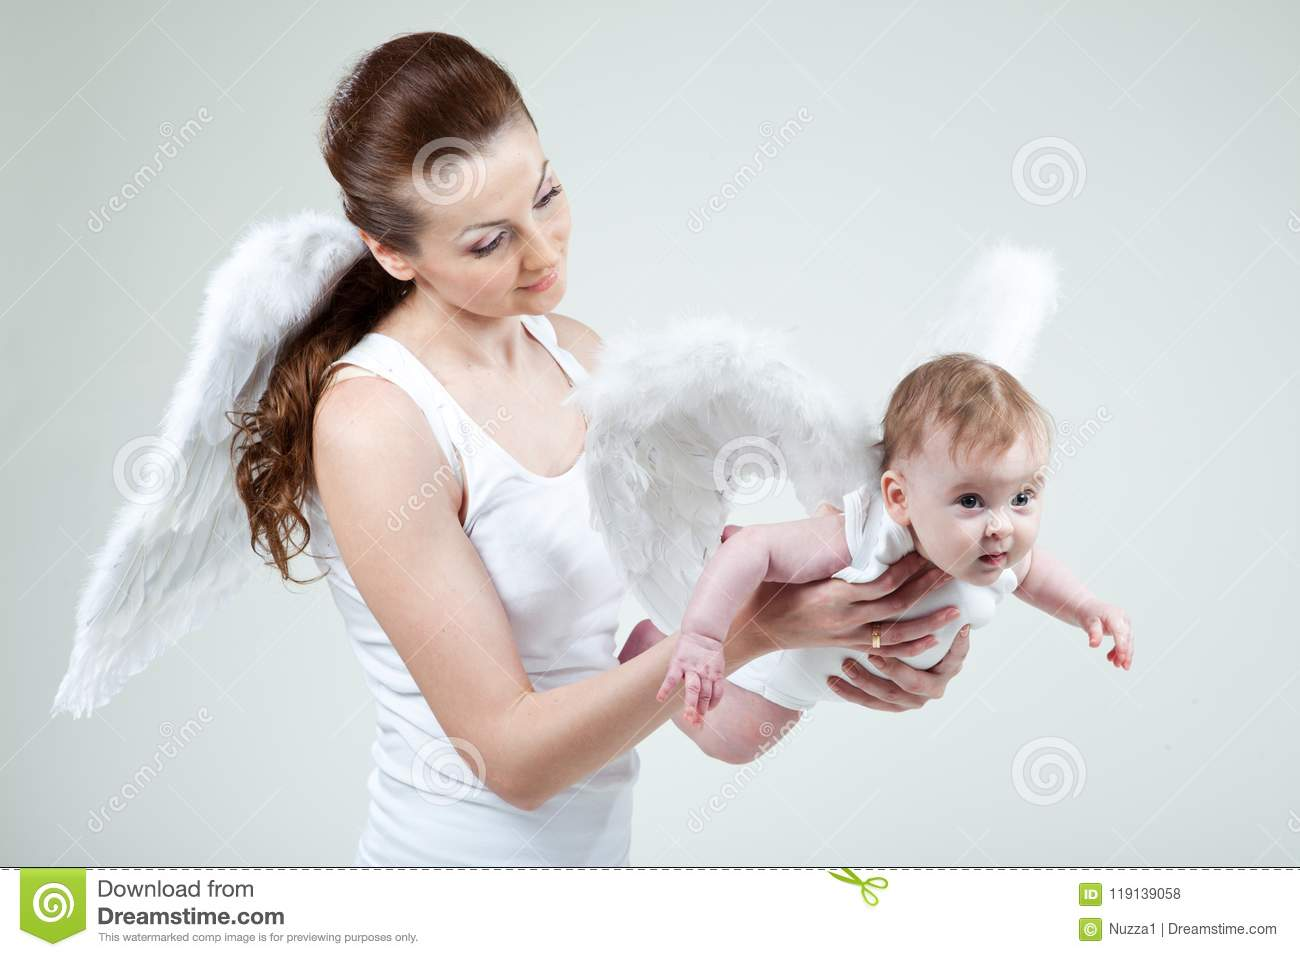 cf9838d040d Young Mom And Her Little Baby-girl Are Angels Stock Photo - Image of ...